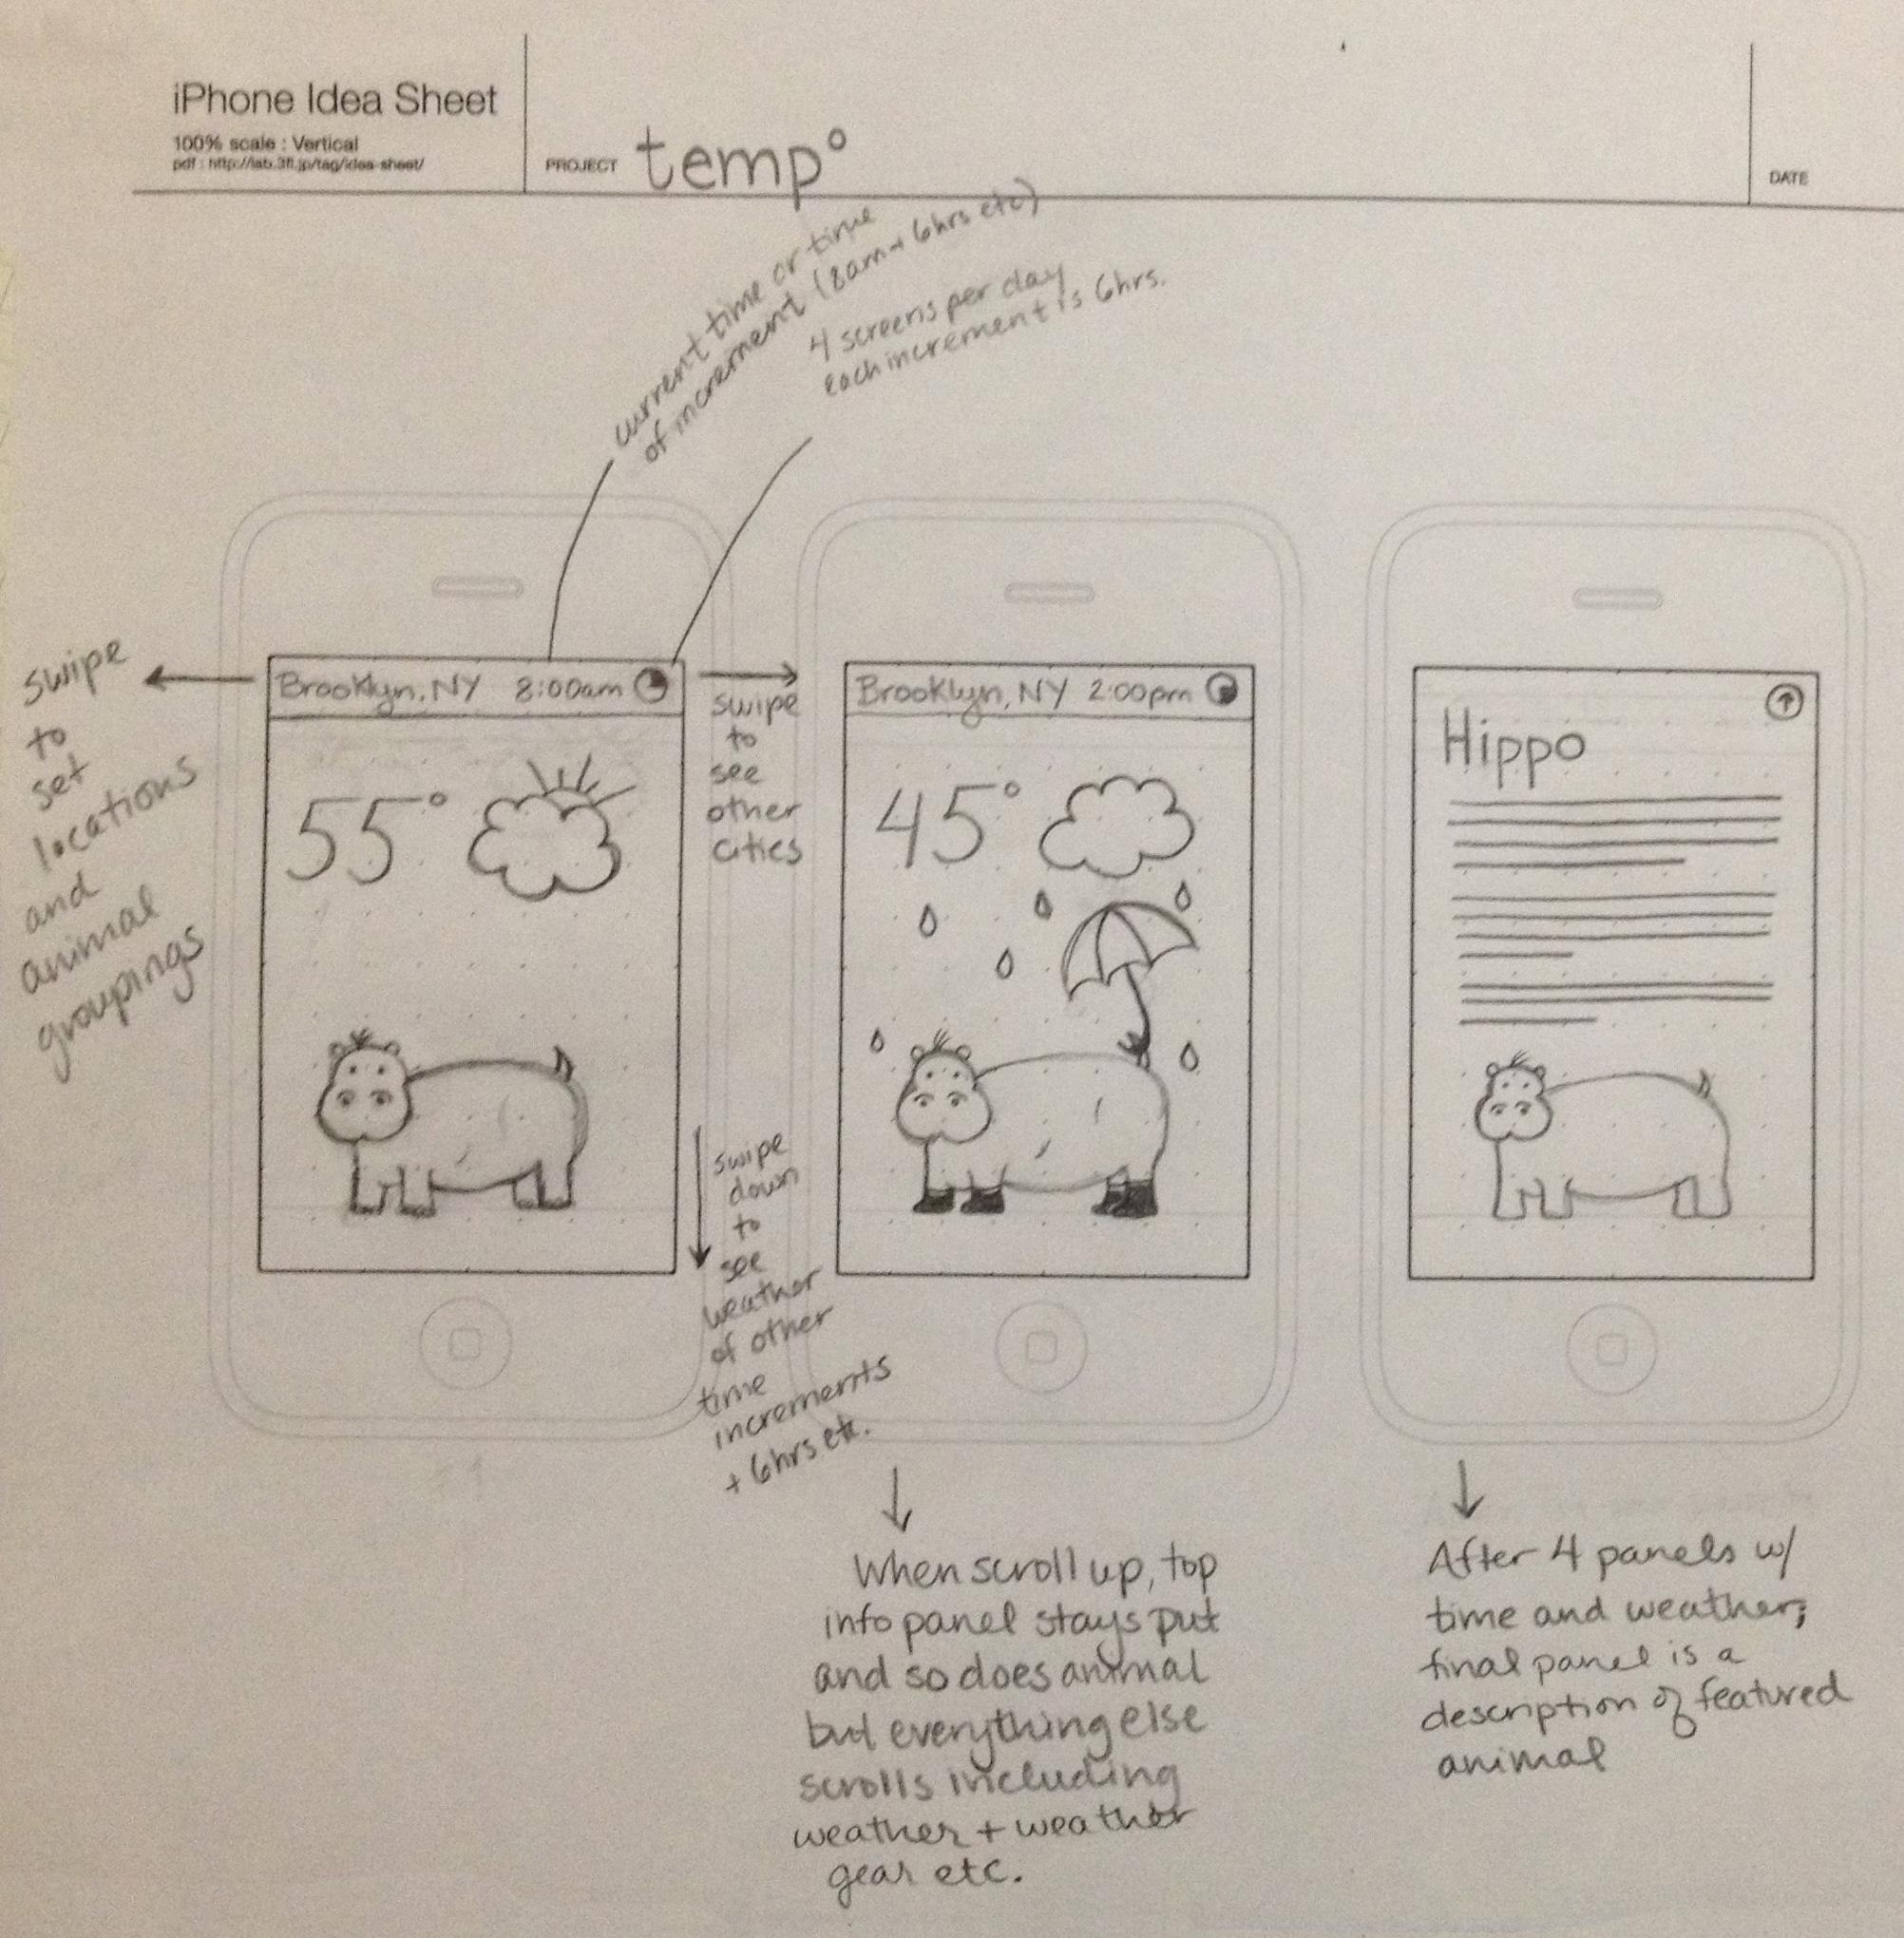 temp - a weather app for kids - image 1 - student project